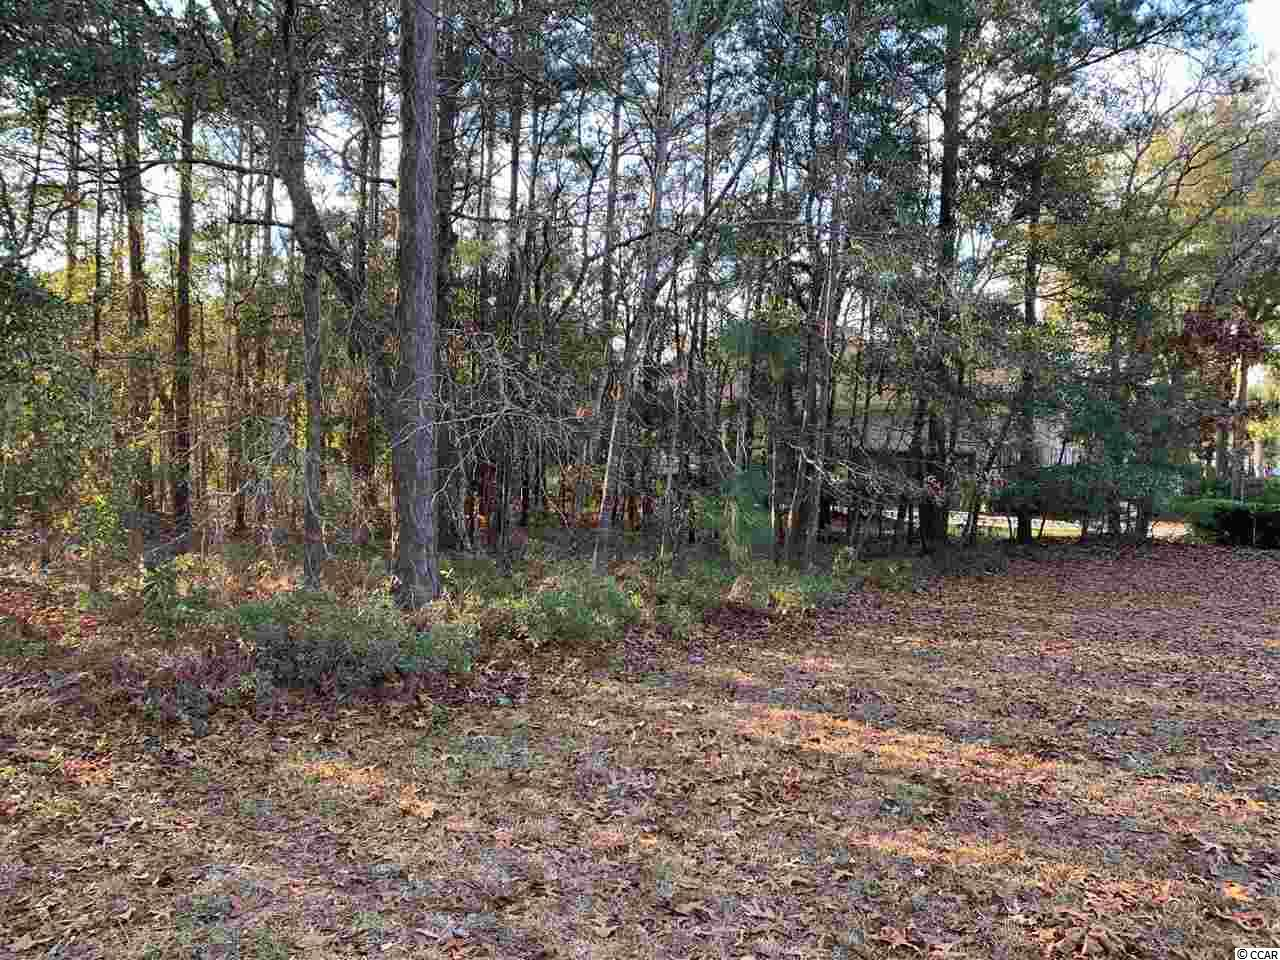 Beautiful lot in Huntington Mews section of The Reserve.  Wonderful trees and tranquil view of lake and fountain.  The Reserve is a gated community with amenities and direct private access to the beach through Litchfield by the Sea.  Short golf cart ride to the beach!  Special spot to build the perfect home.